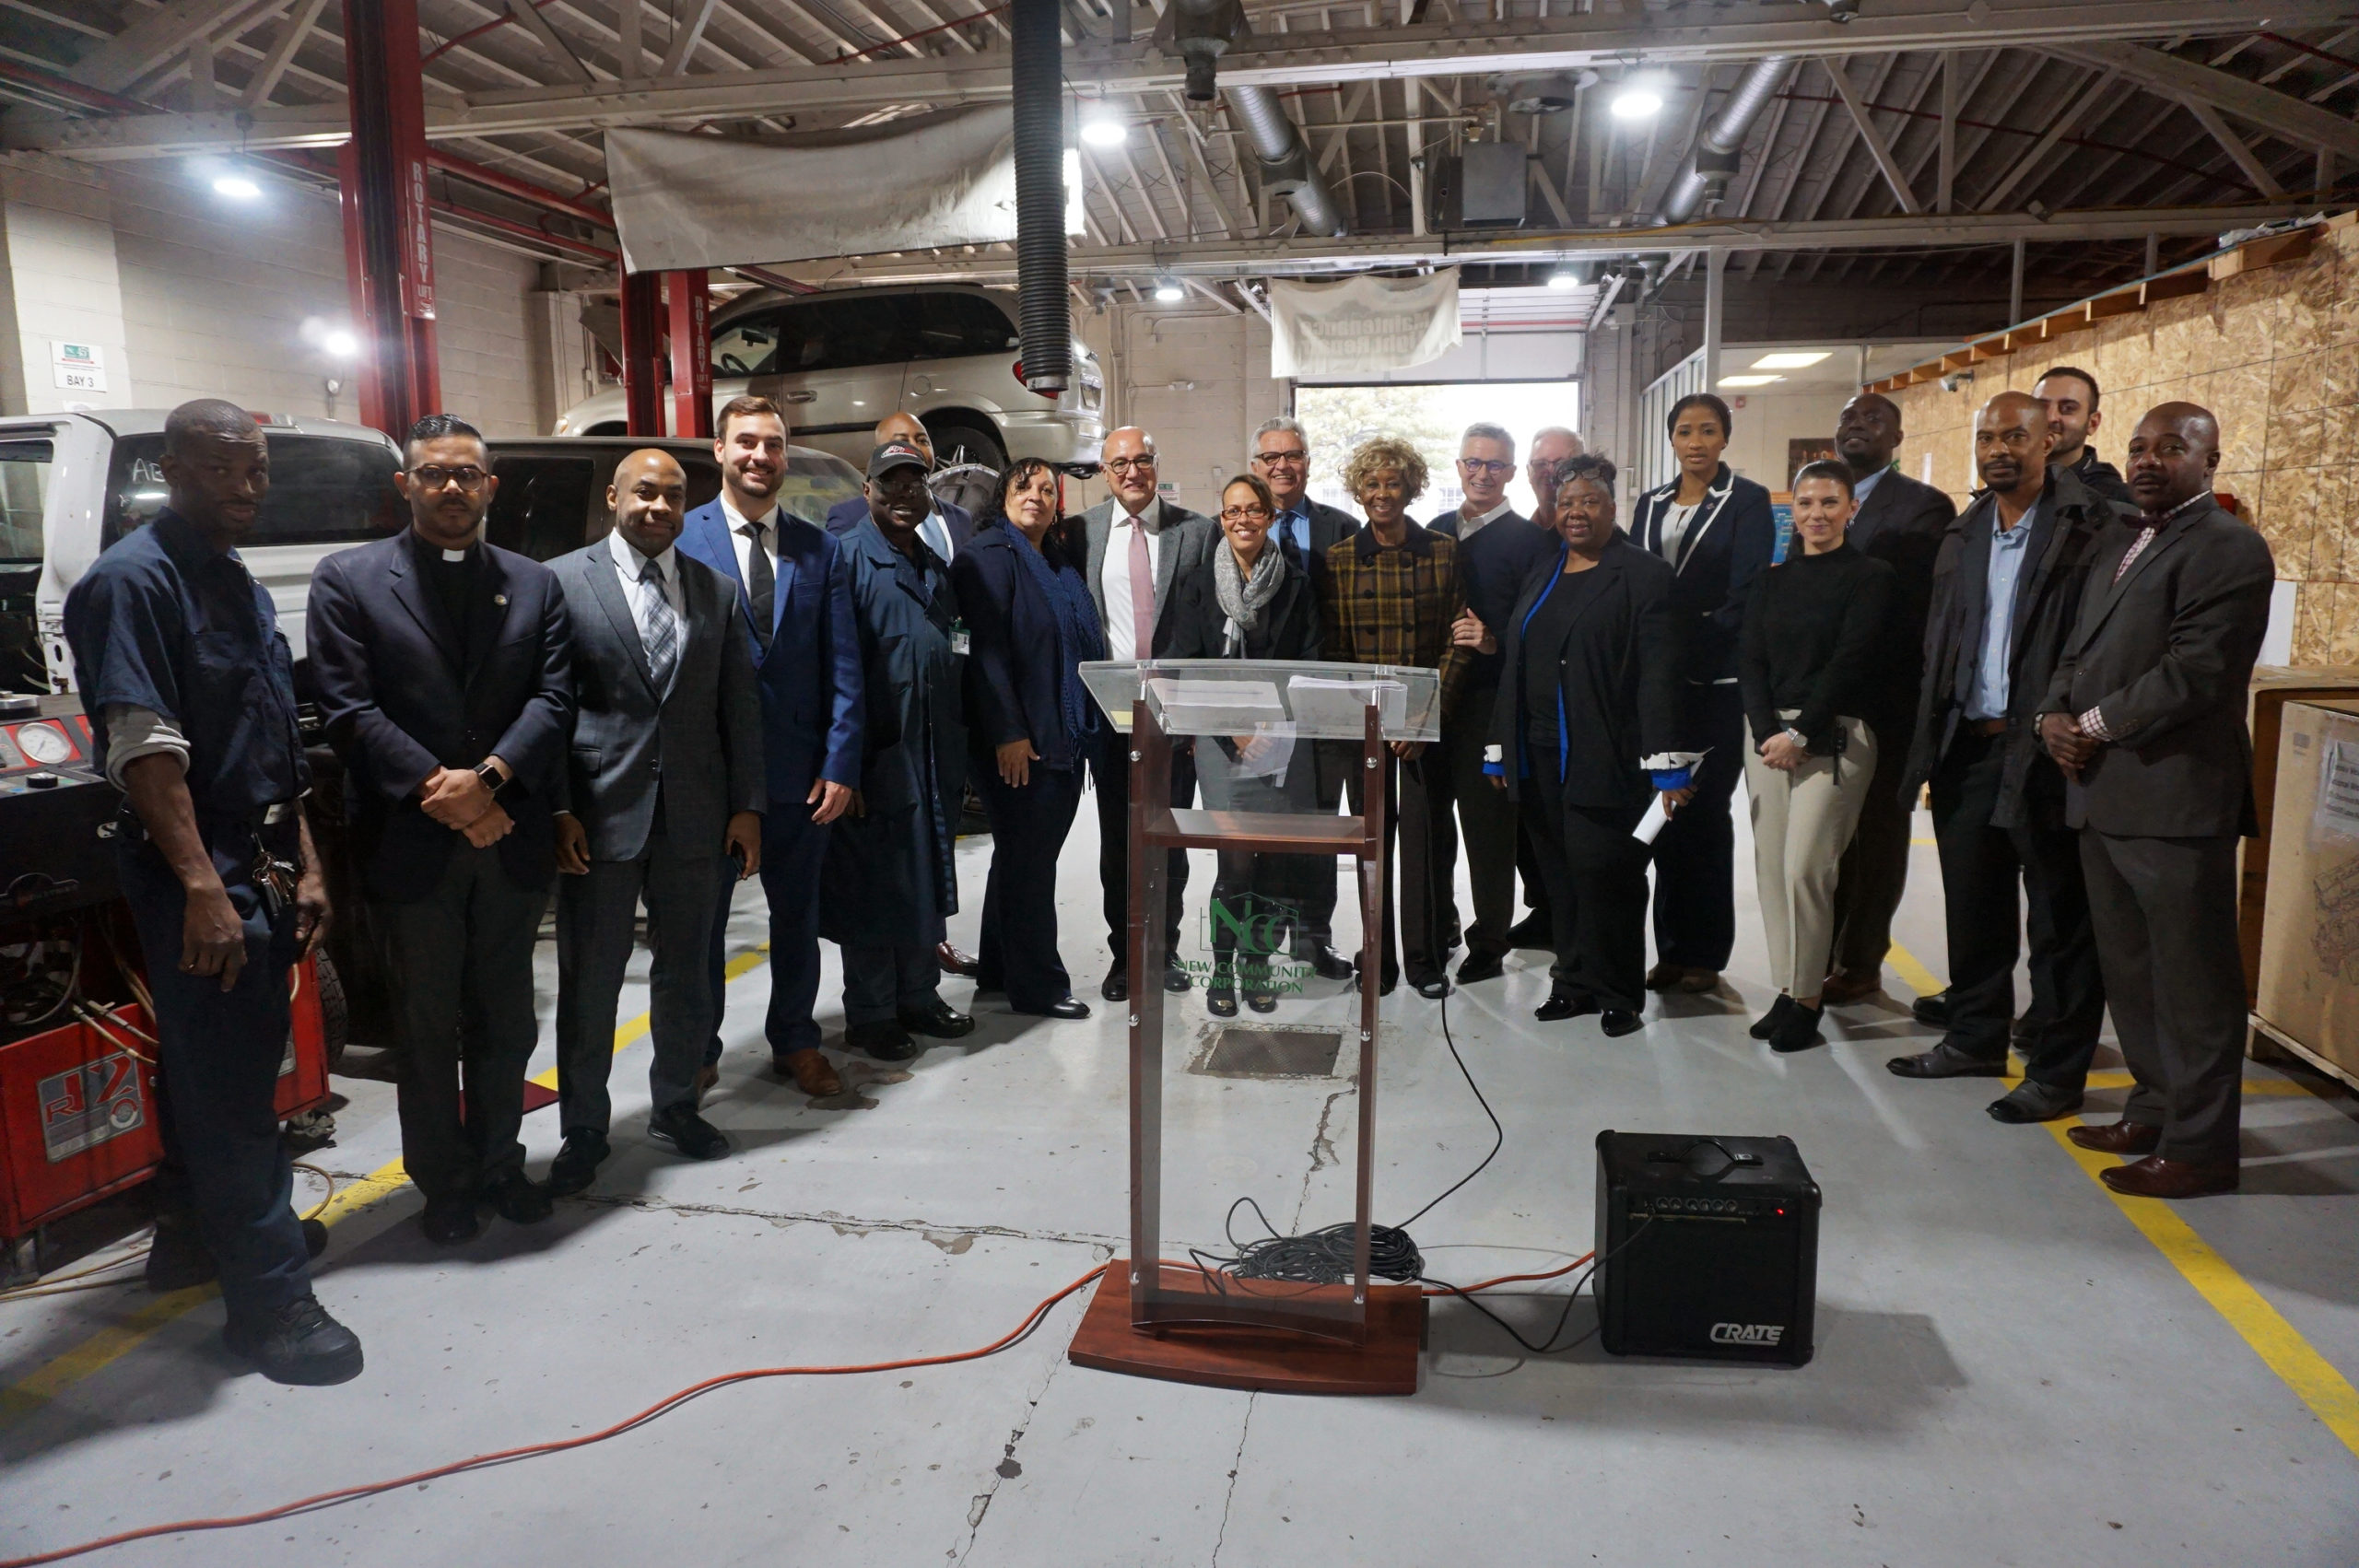 NCCTI Hosts Press Conference for Gov. McGreevey and NJ Reentry Corporation